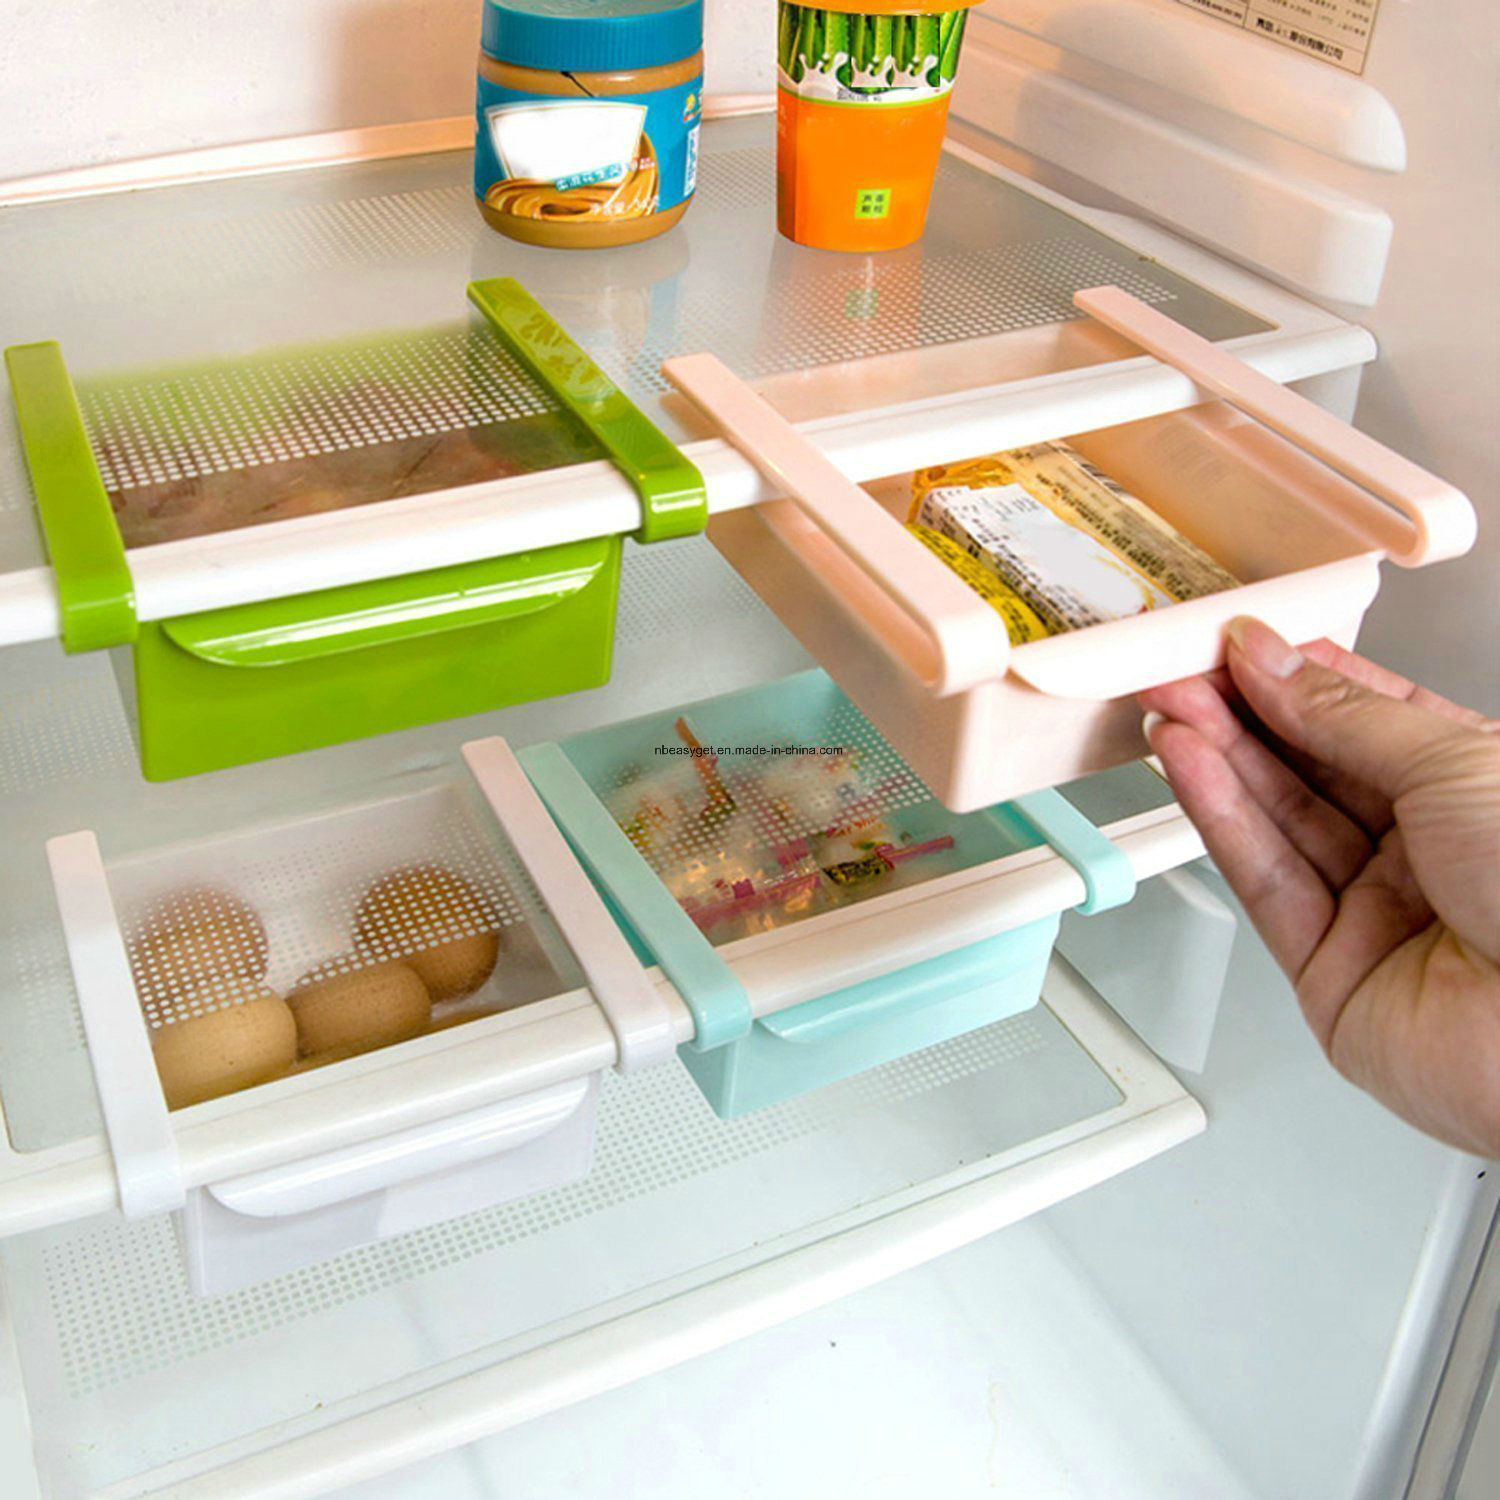 Refrigerator and Fridge Storage Organizer Bins Desk Organizer